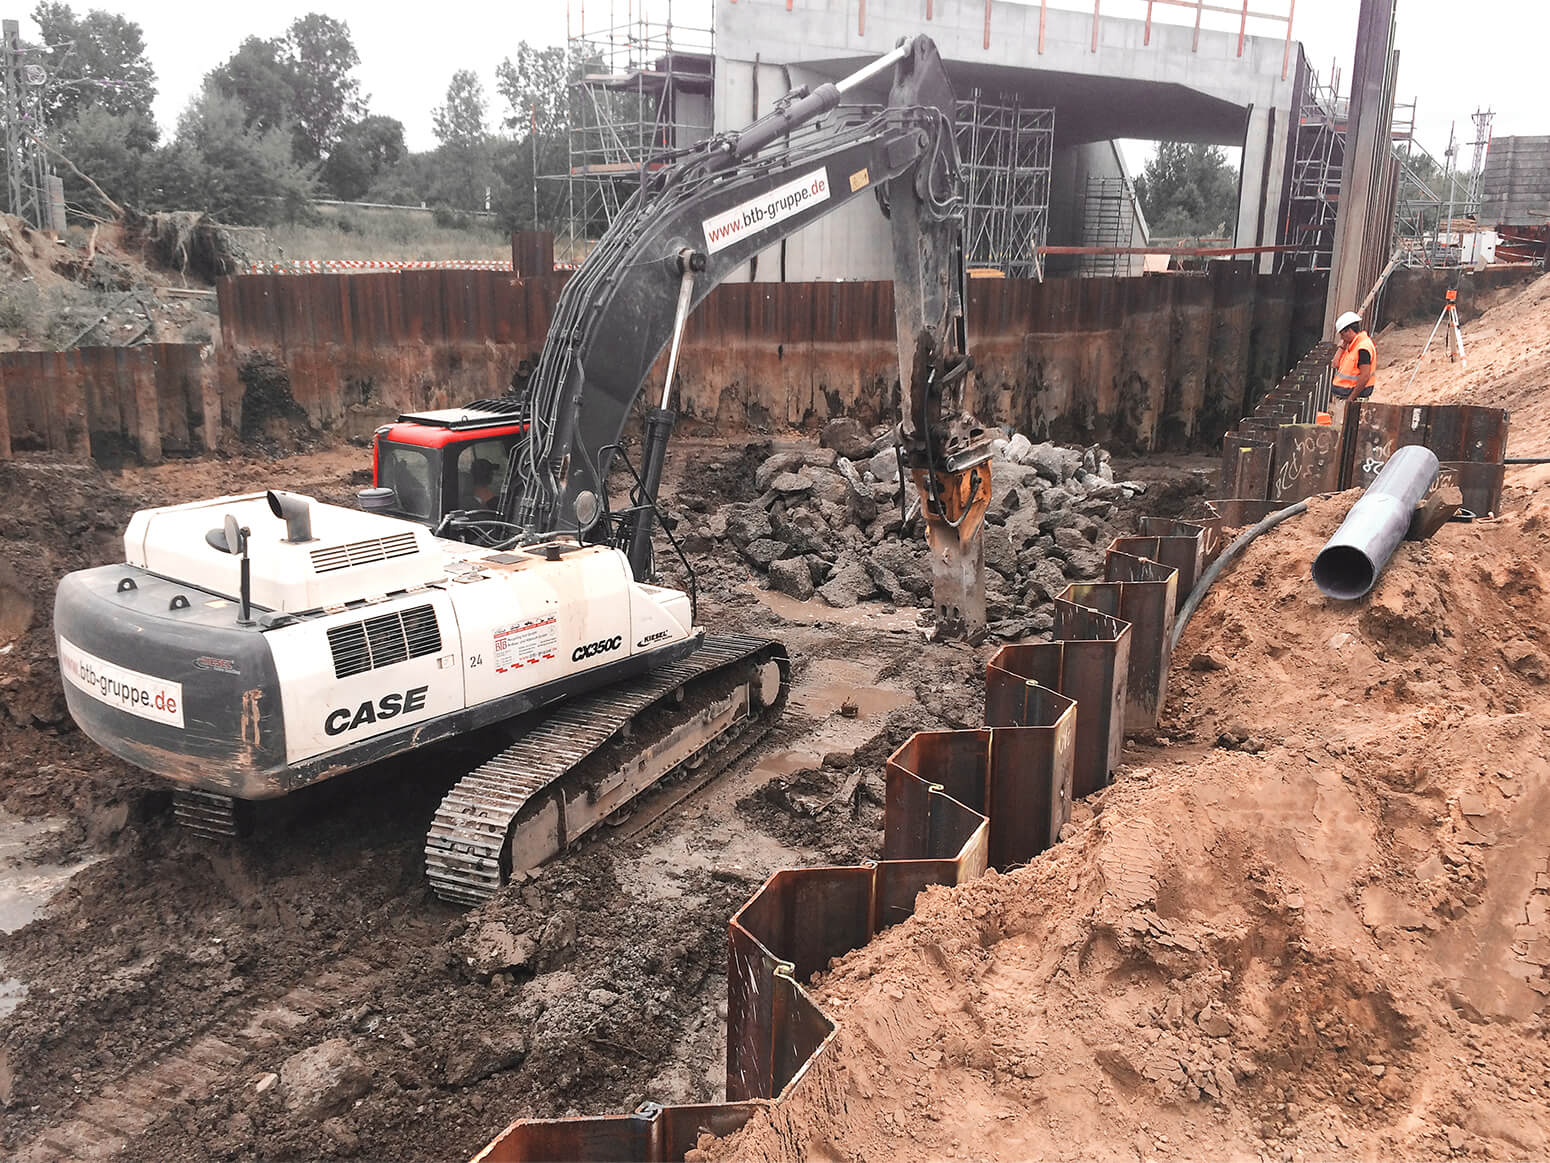 A heavy construction machine with a hammer demolishing an old embankment and old bridges